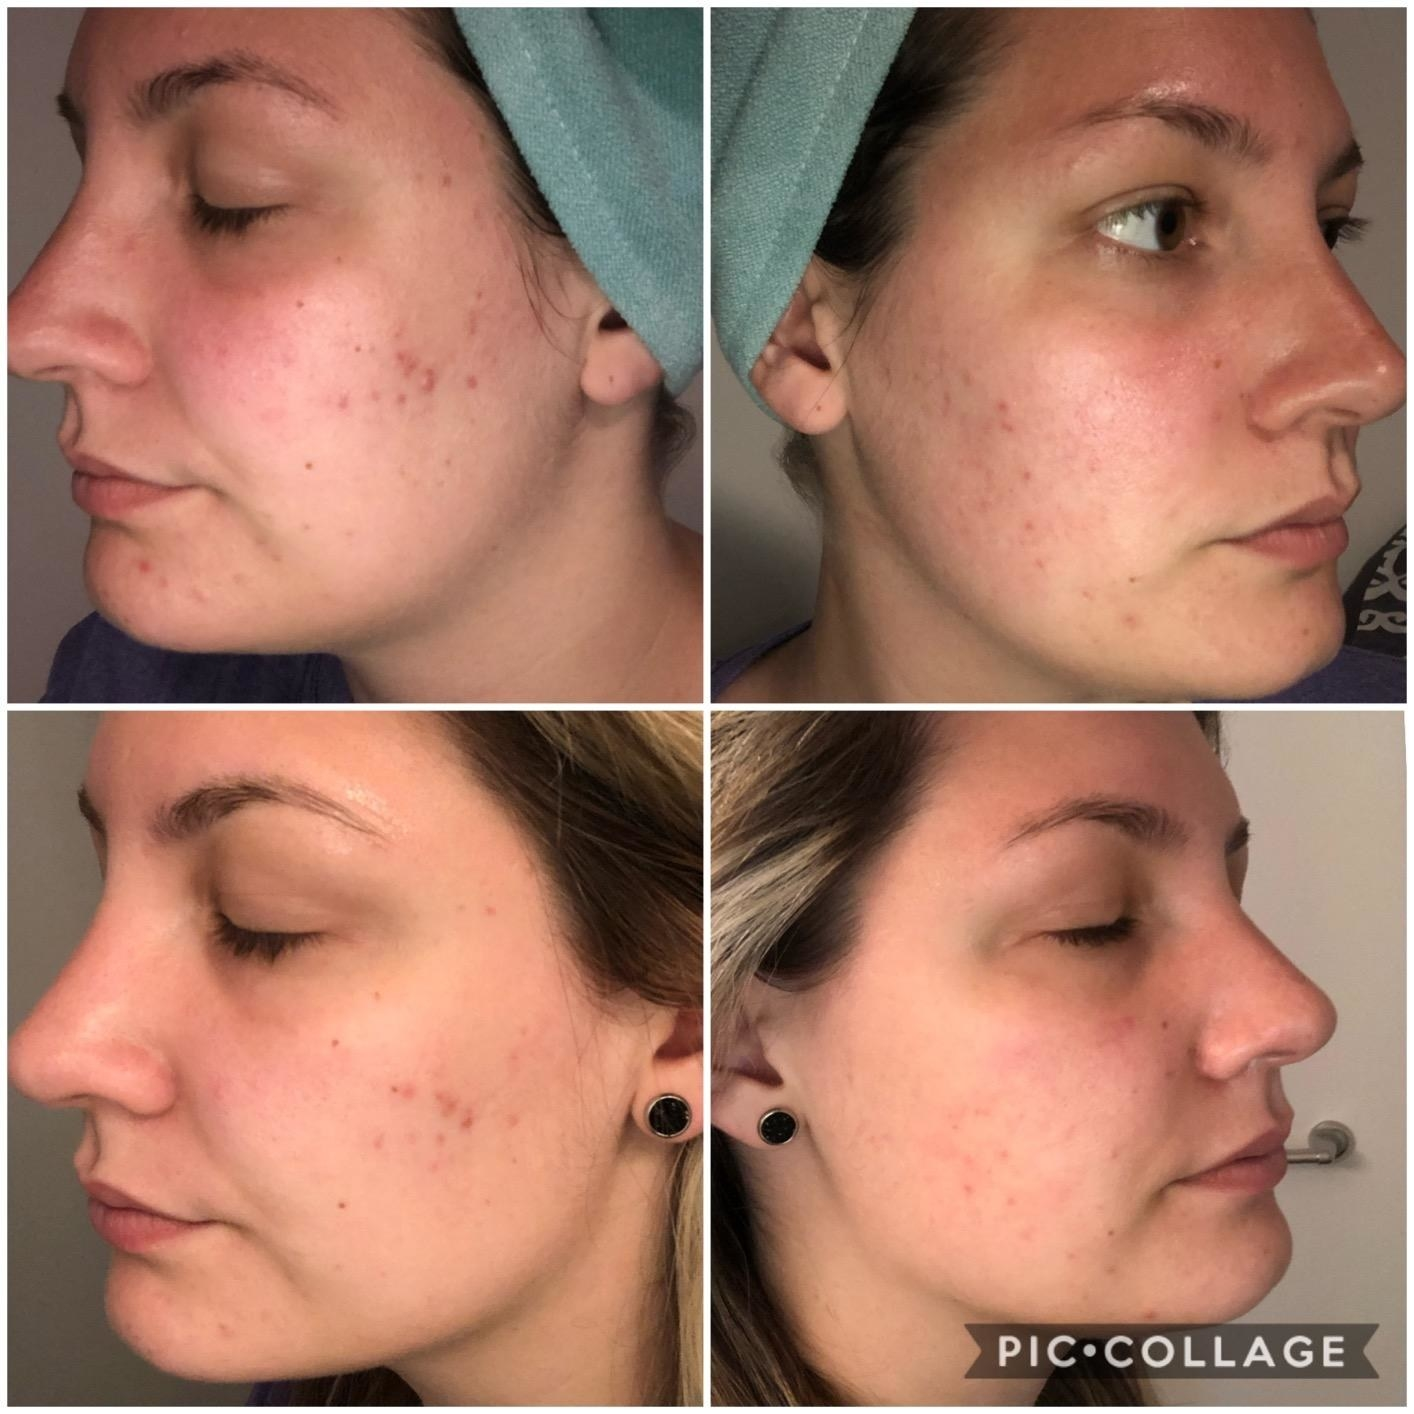 a four-photo collage of a before and after of reviewer's acne-scarred skin, showing her scars slowly fading and her skin becoming more even-toned with time